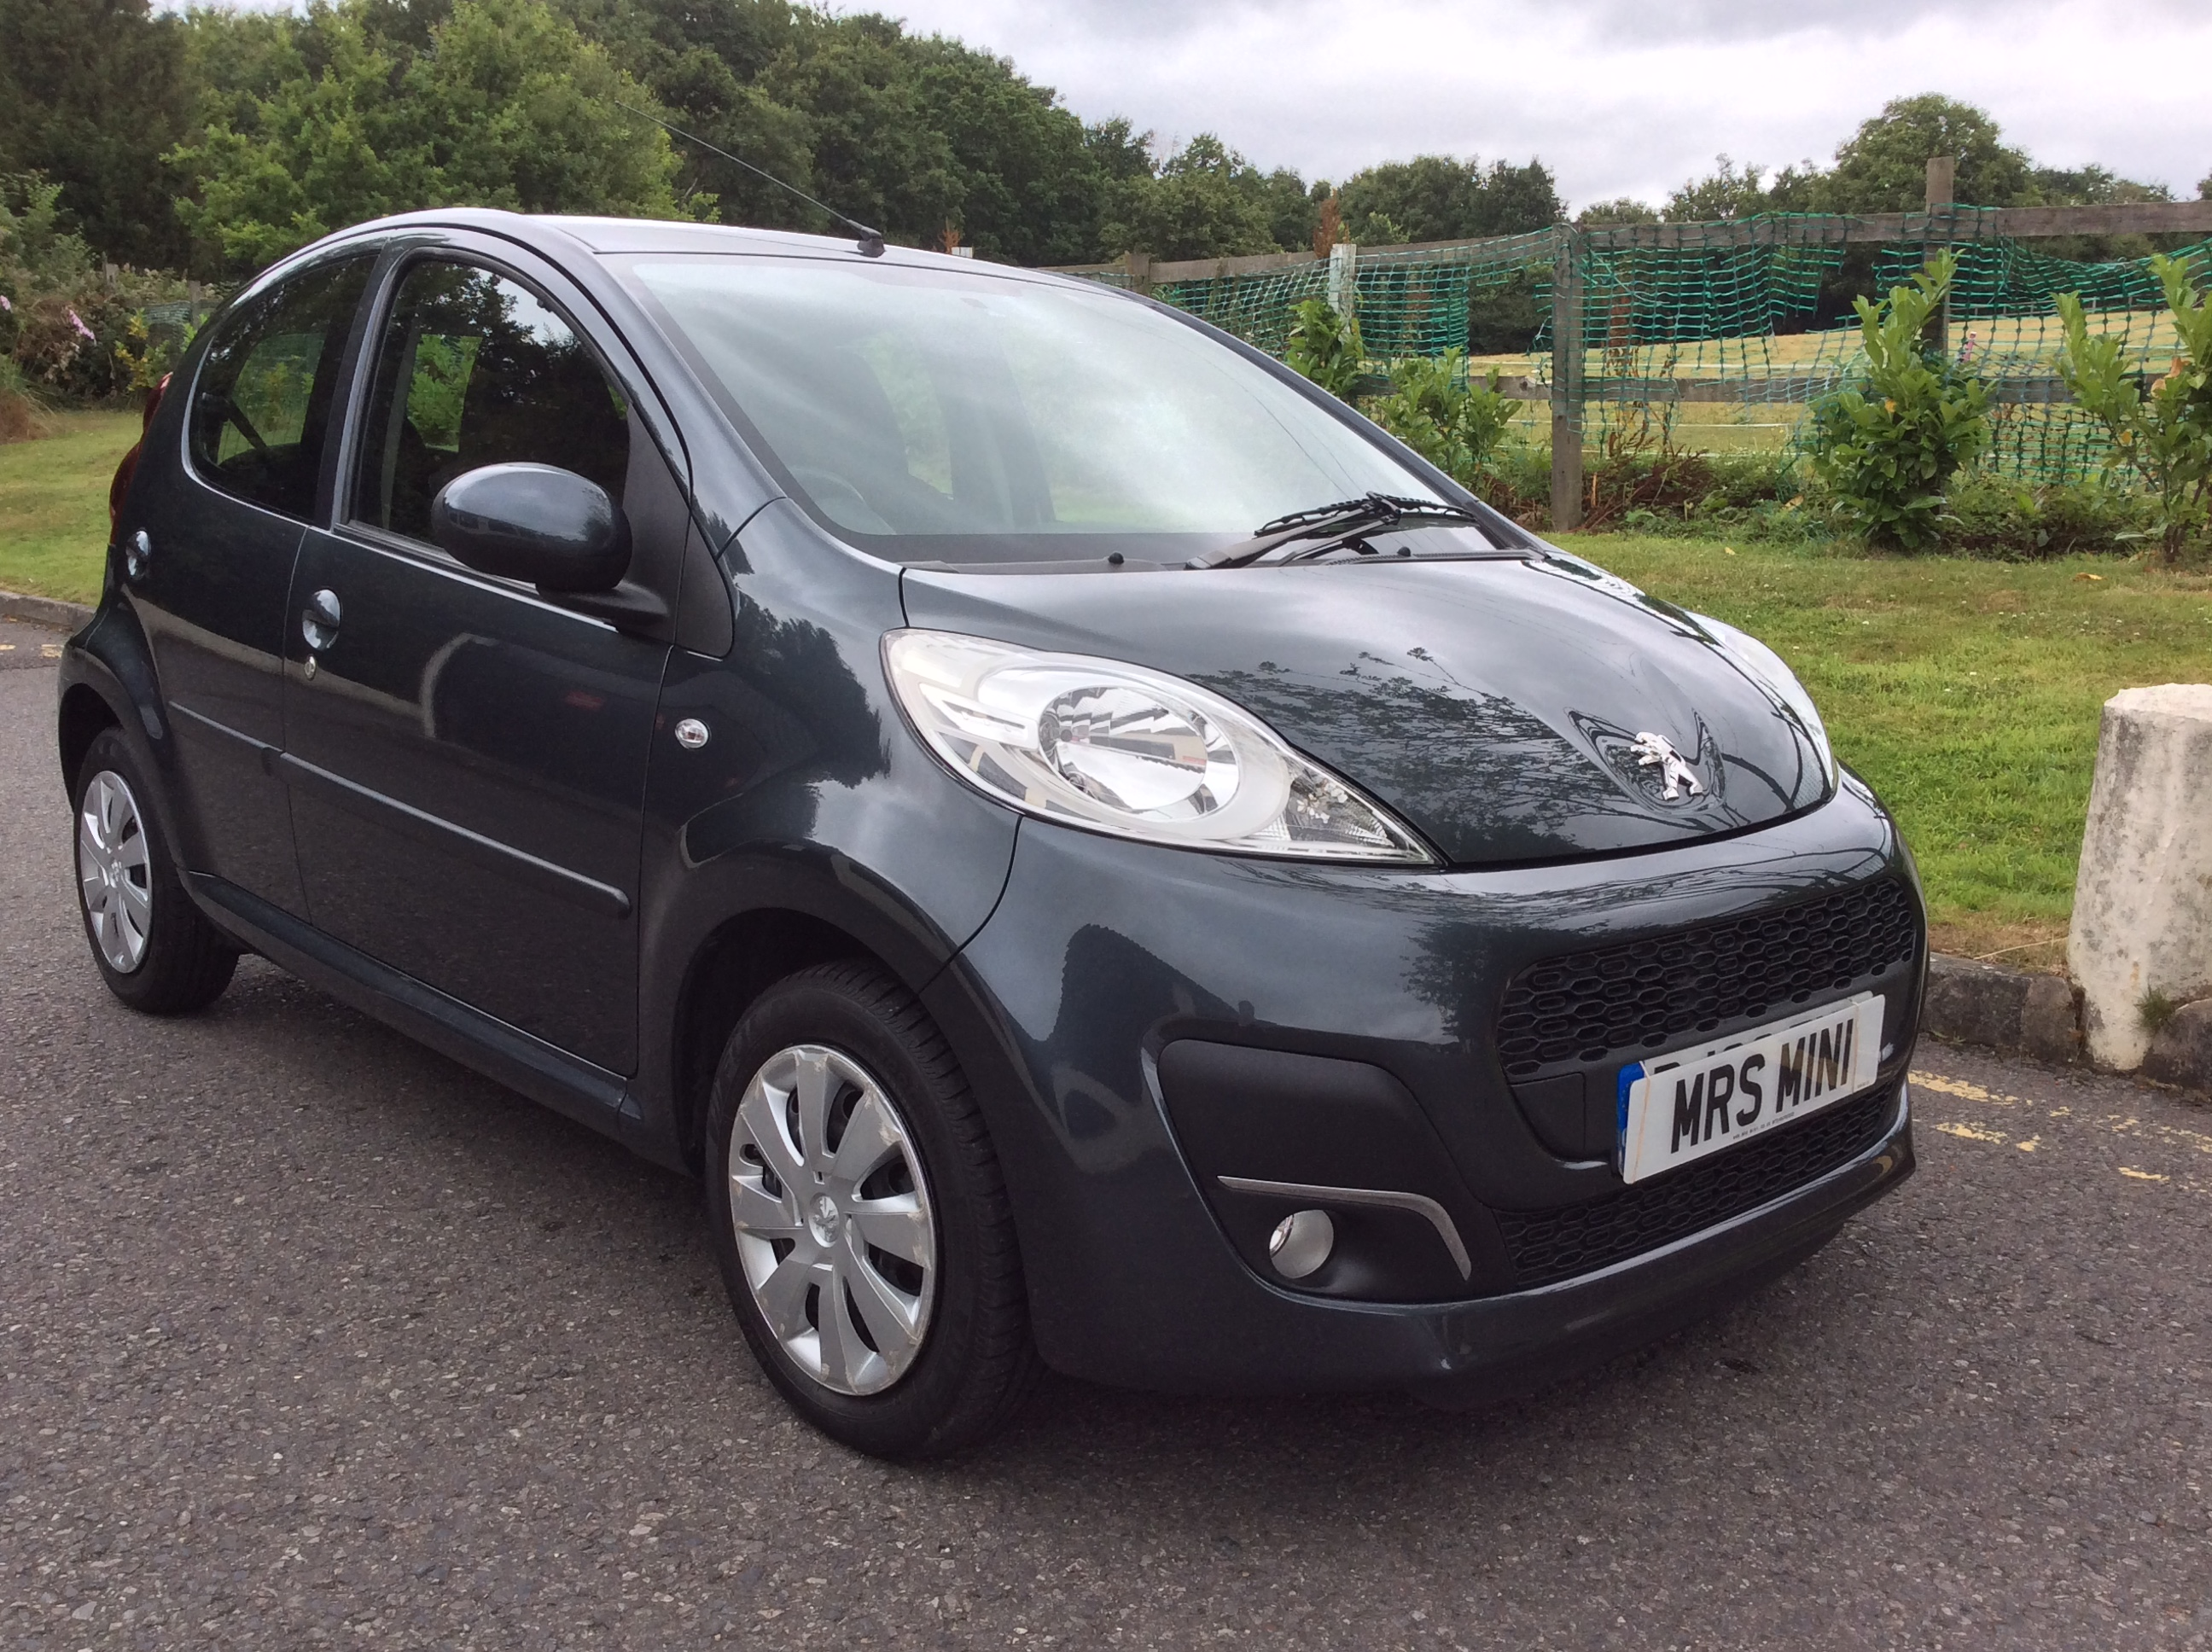 2013 peugeot 107 1 0 12v active 5dr in grey stunning with 25k miles mrs mini used mini. Black Bedroom Furniture Sets. Home Design Ideas